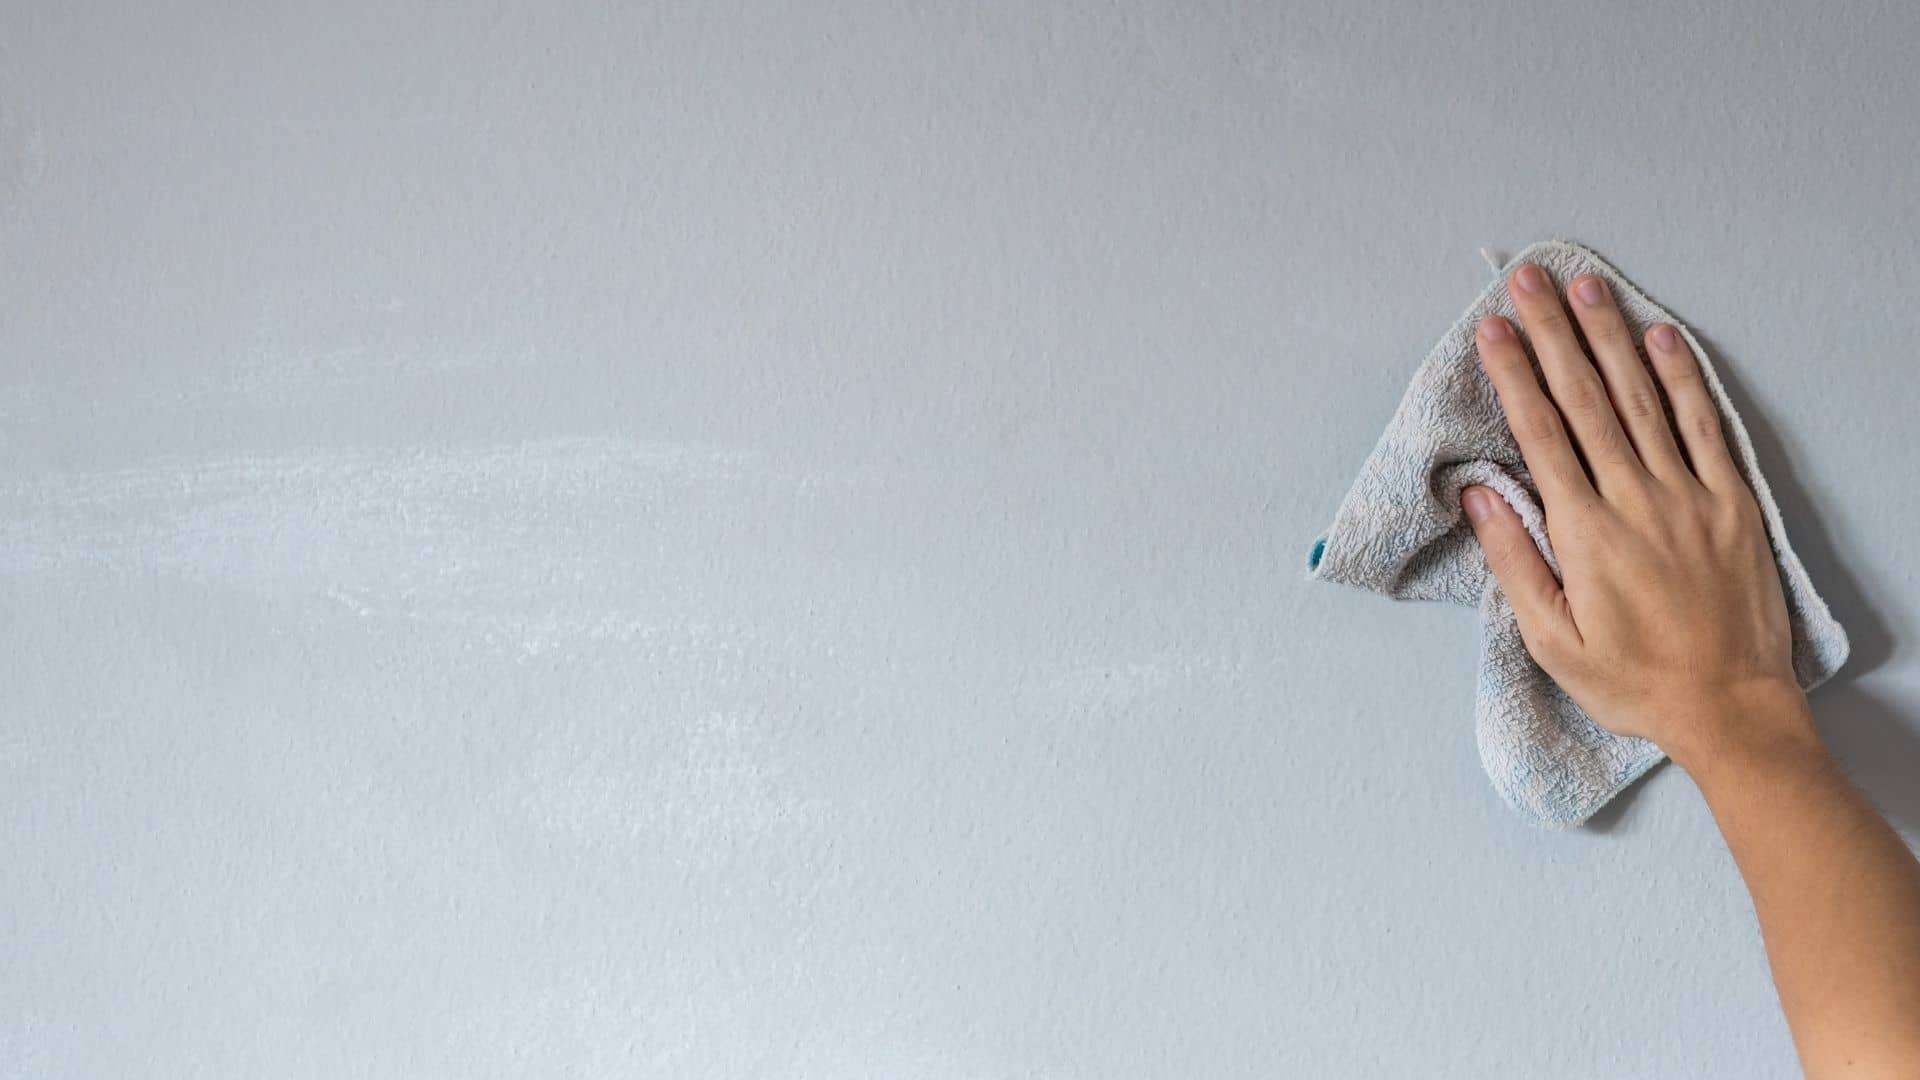 How To Wash Walls With Flat Paint